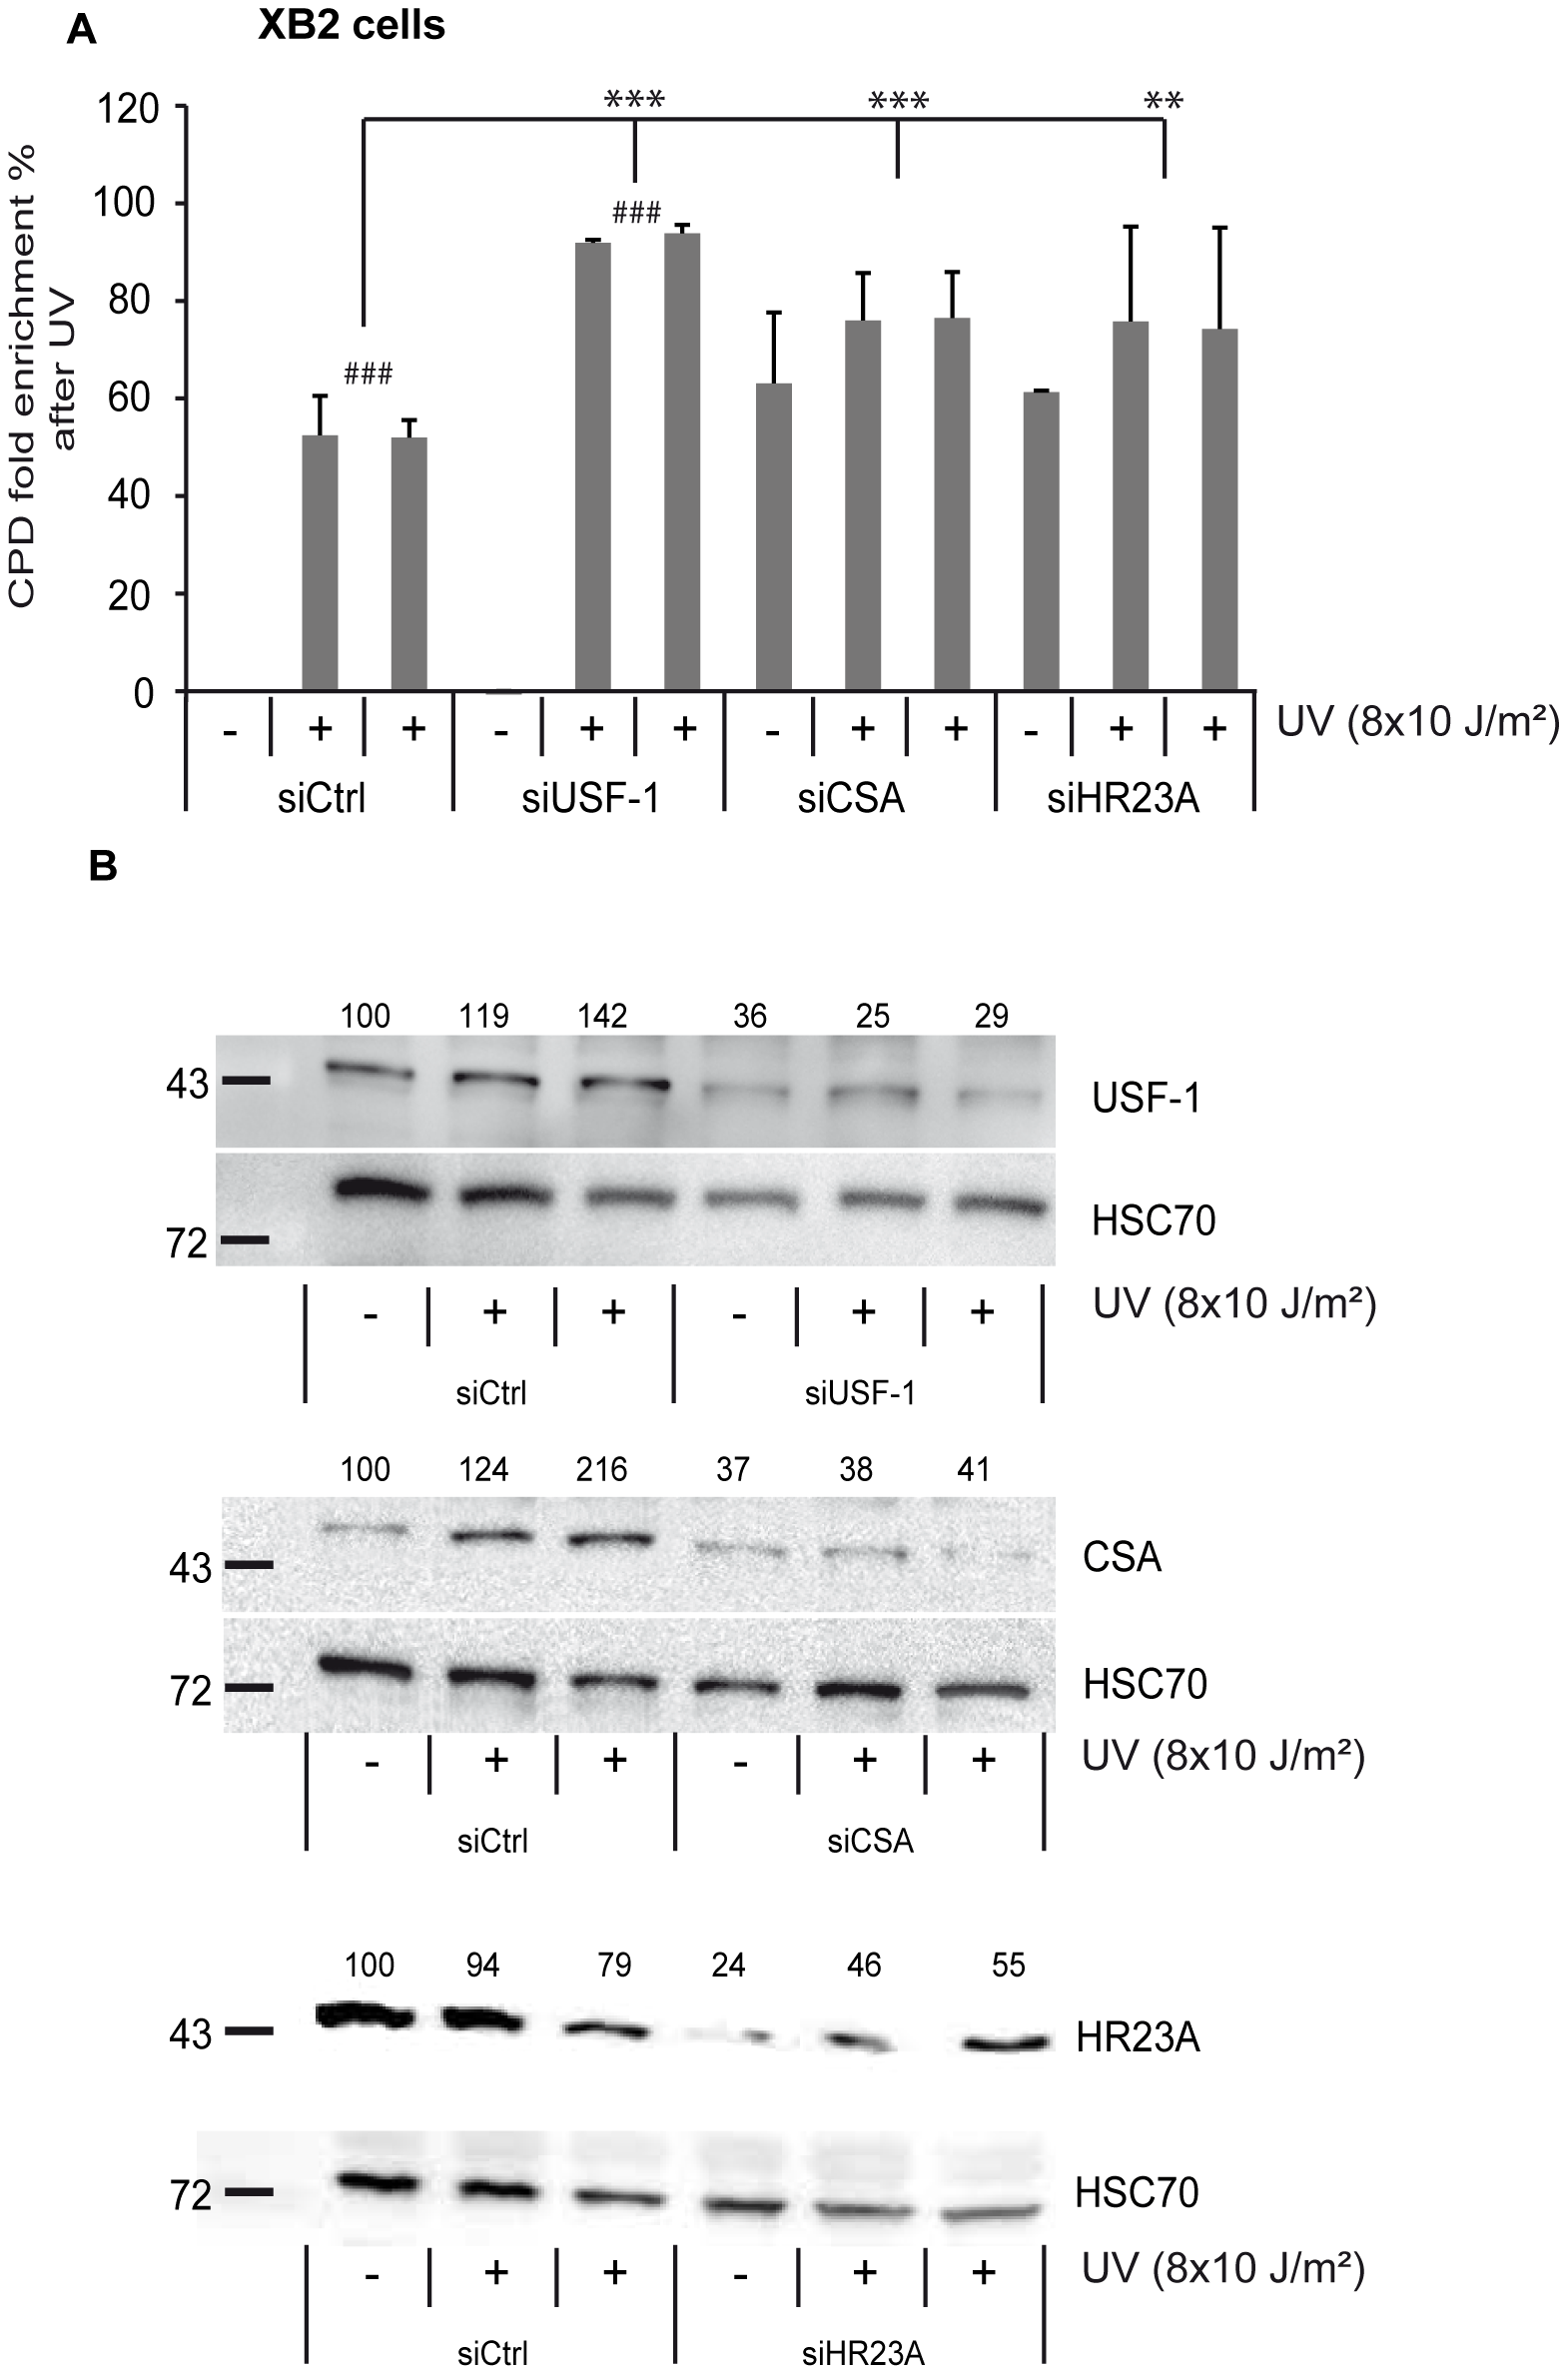 CSA, HR23A, and USF-1 knock-down (KD) affect the level of DNA damage in XB2 cells.